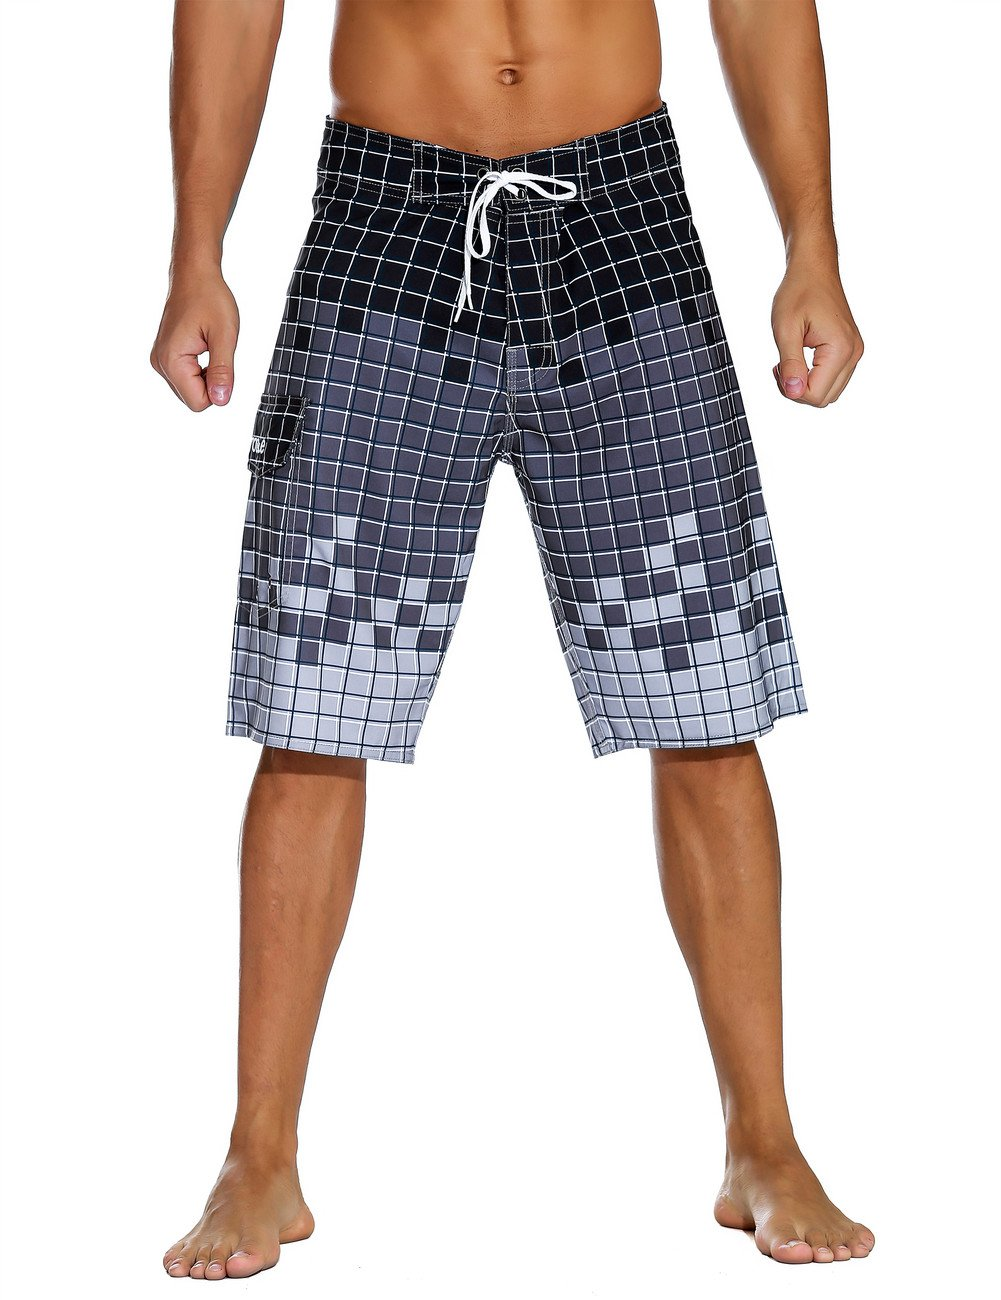 Nonwe Men's Sportwear Quick Dry Board Shorts with Lining JF16167